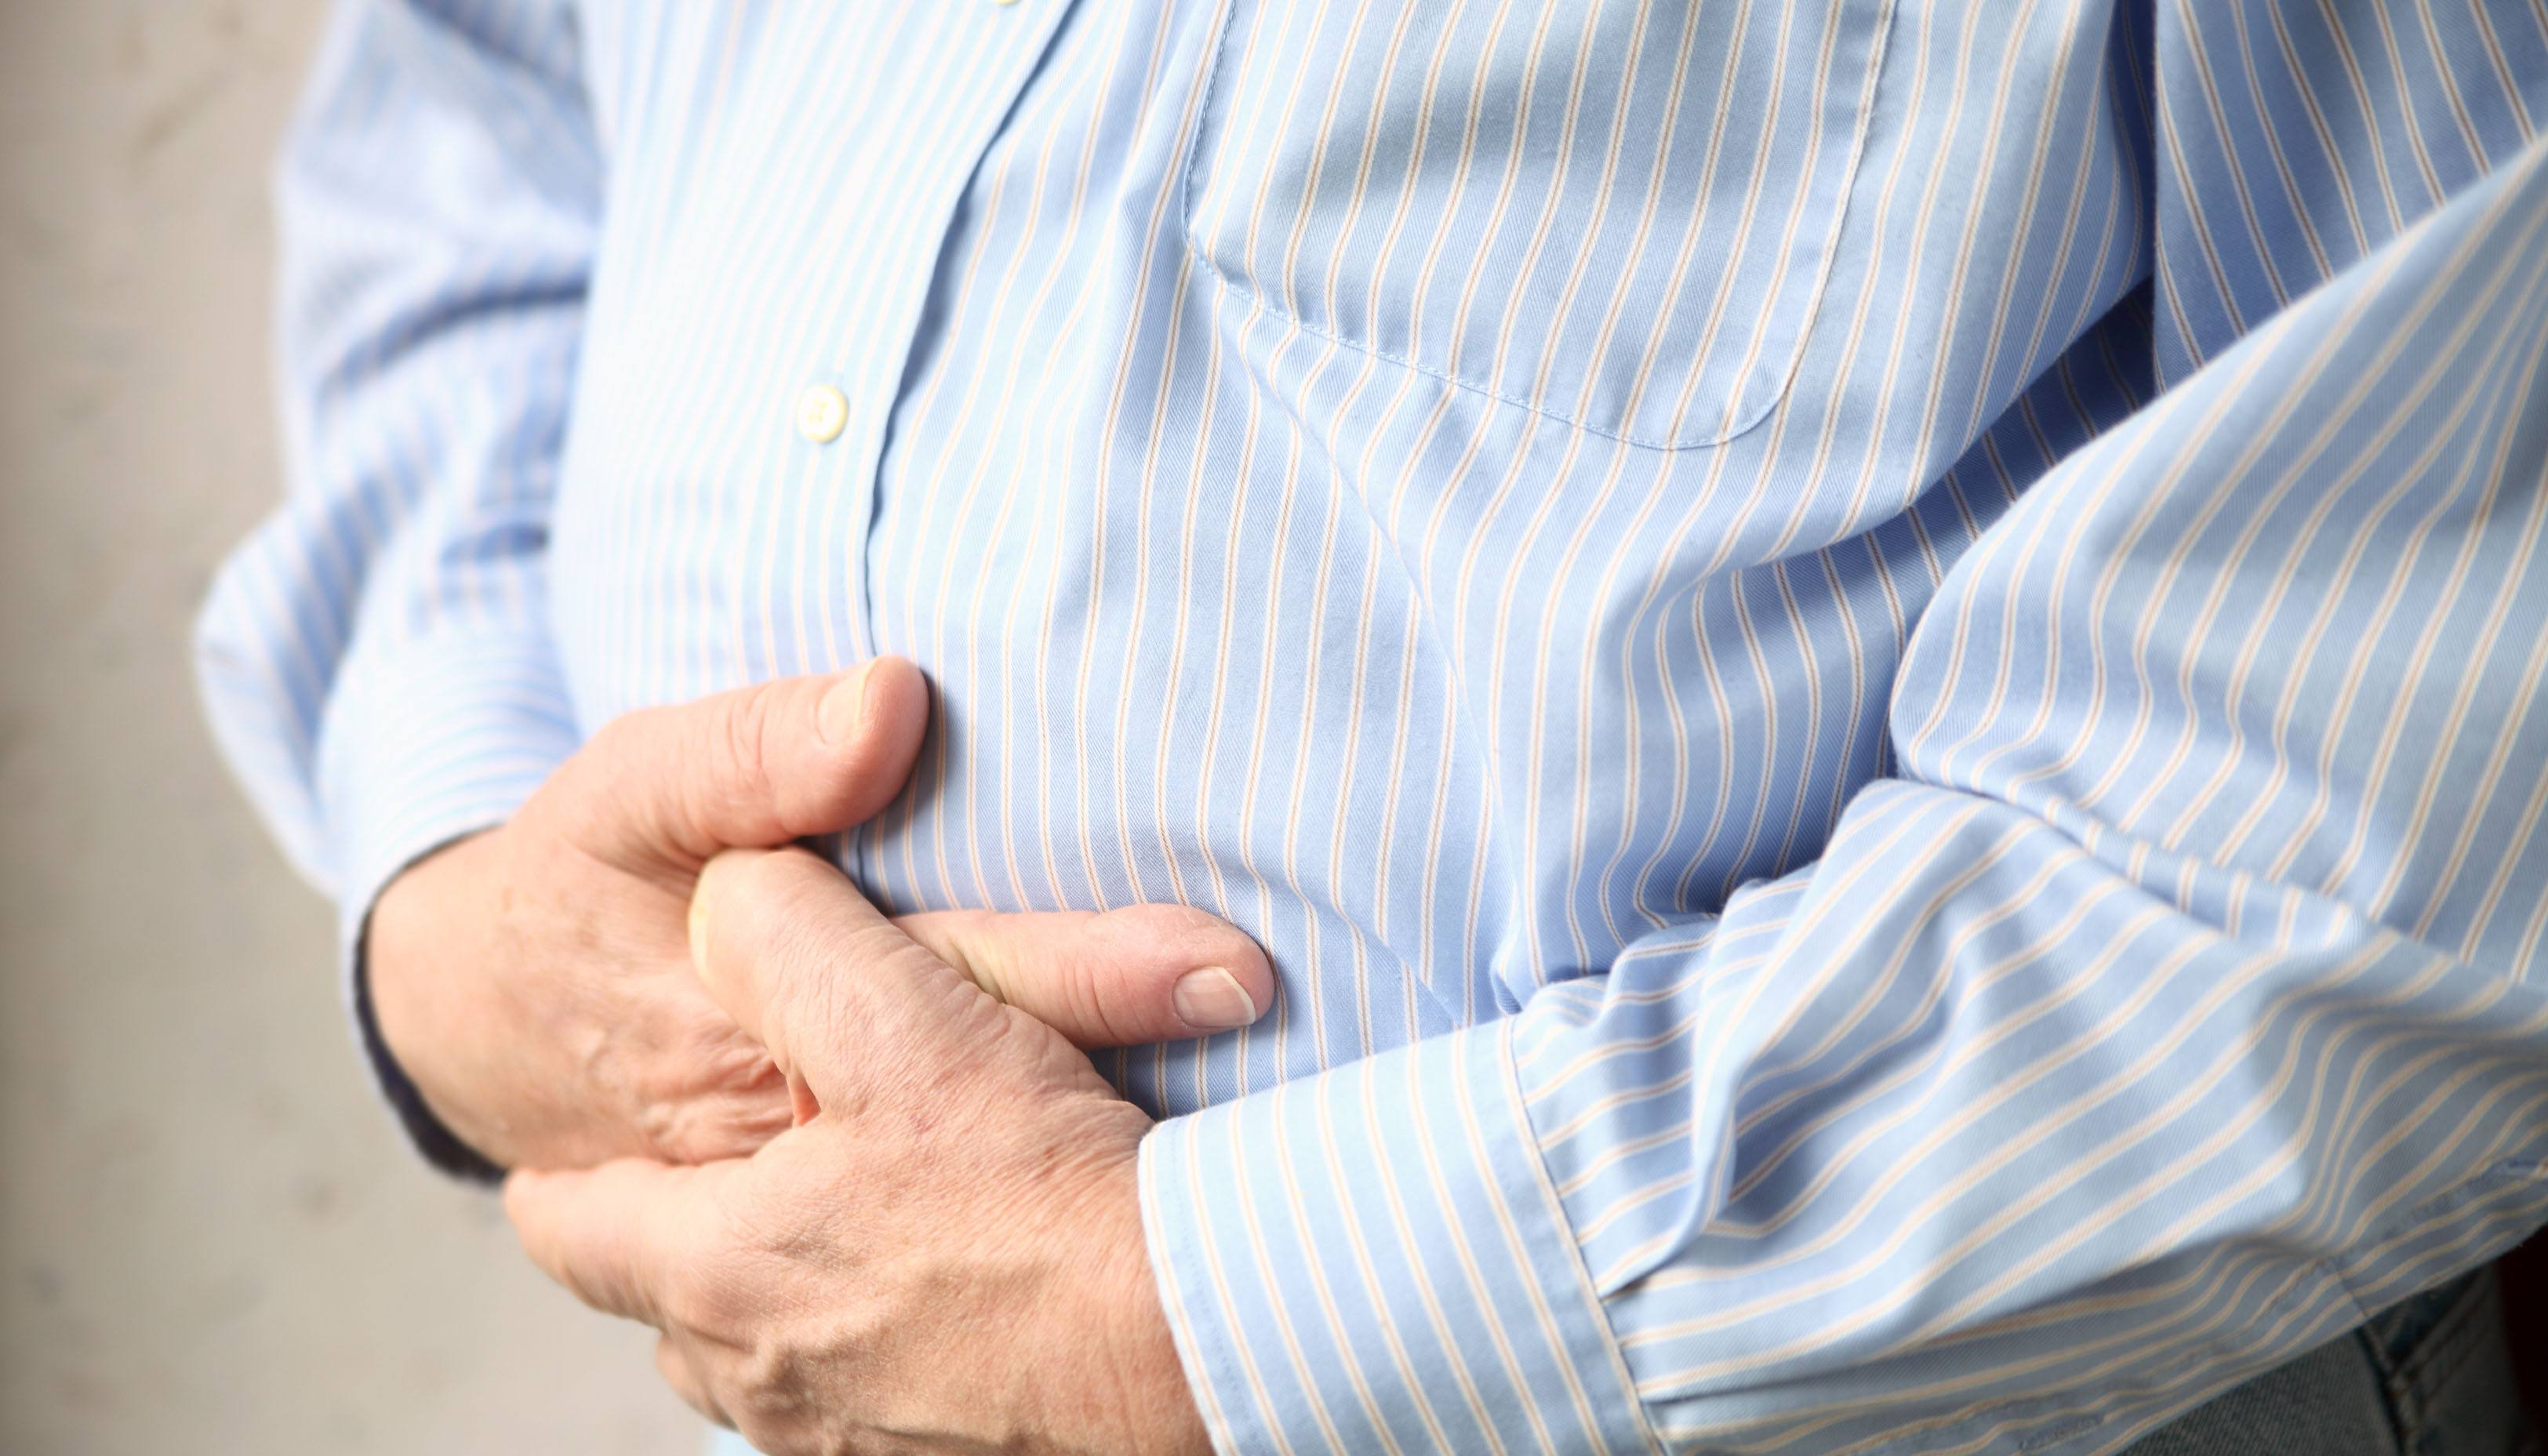 Male holding hands over stomach